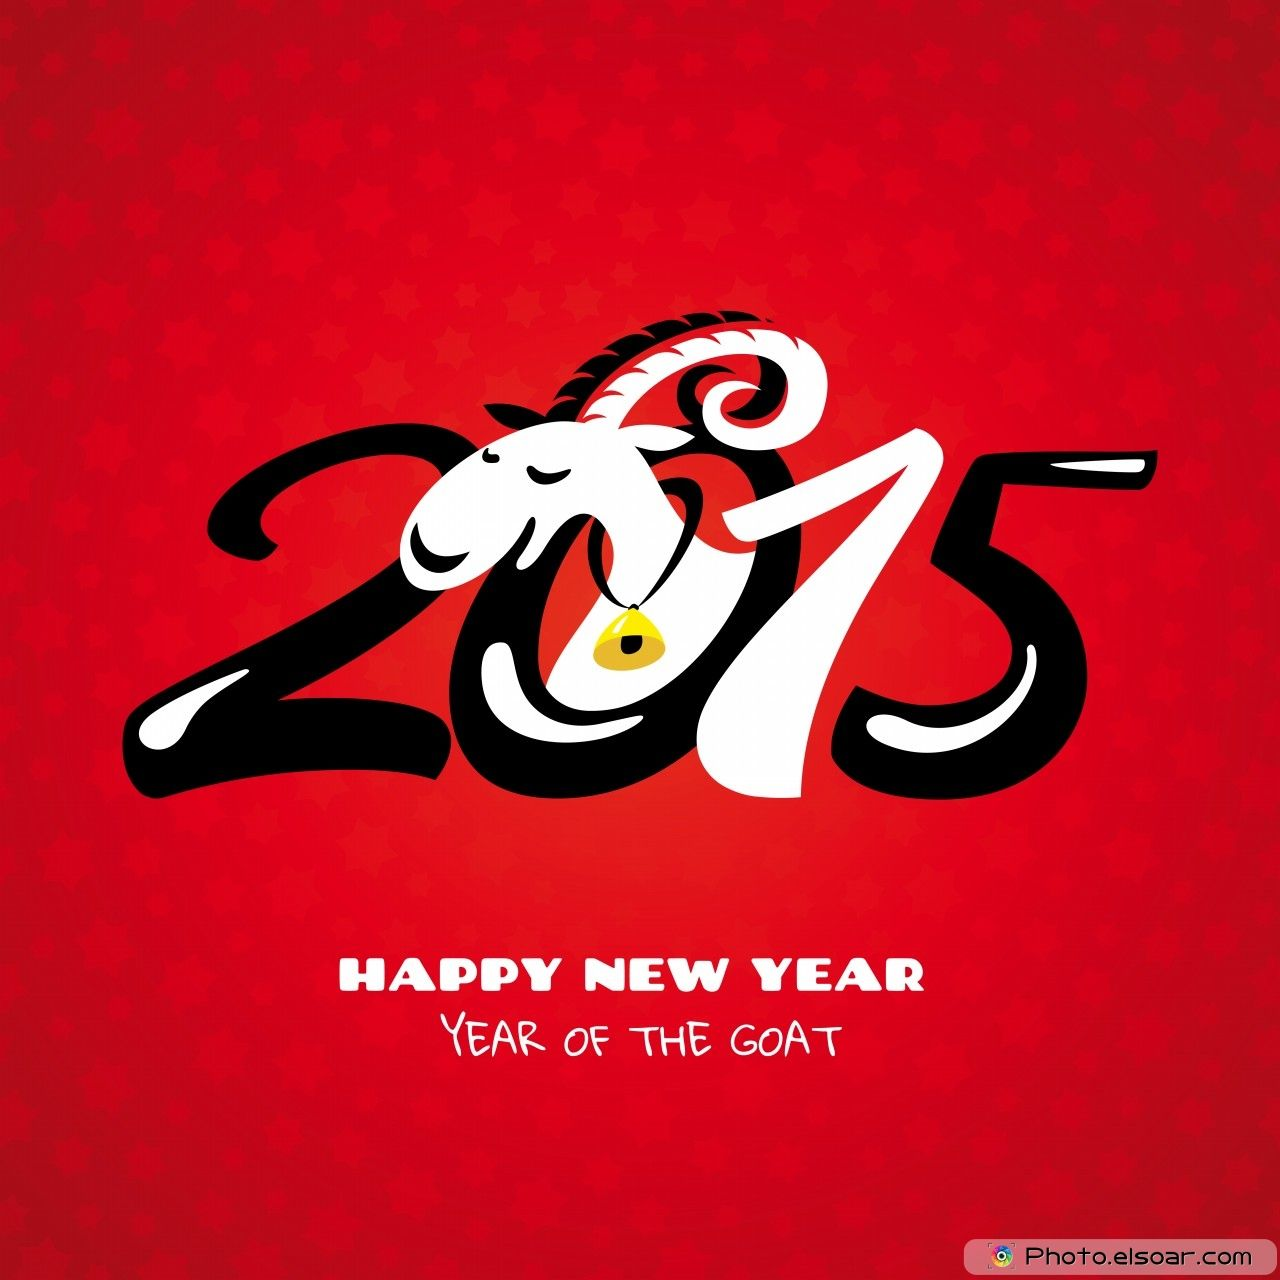 For all my friends that celebrate chinese new yearhave a very creative chinese new year greeting card ideas 2015 with red chinese new year 2015 greeting cards with goats kristyandbryce Choice Image